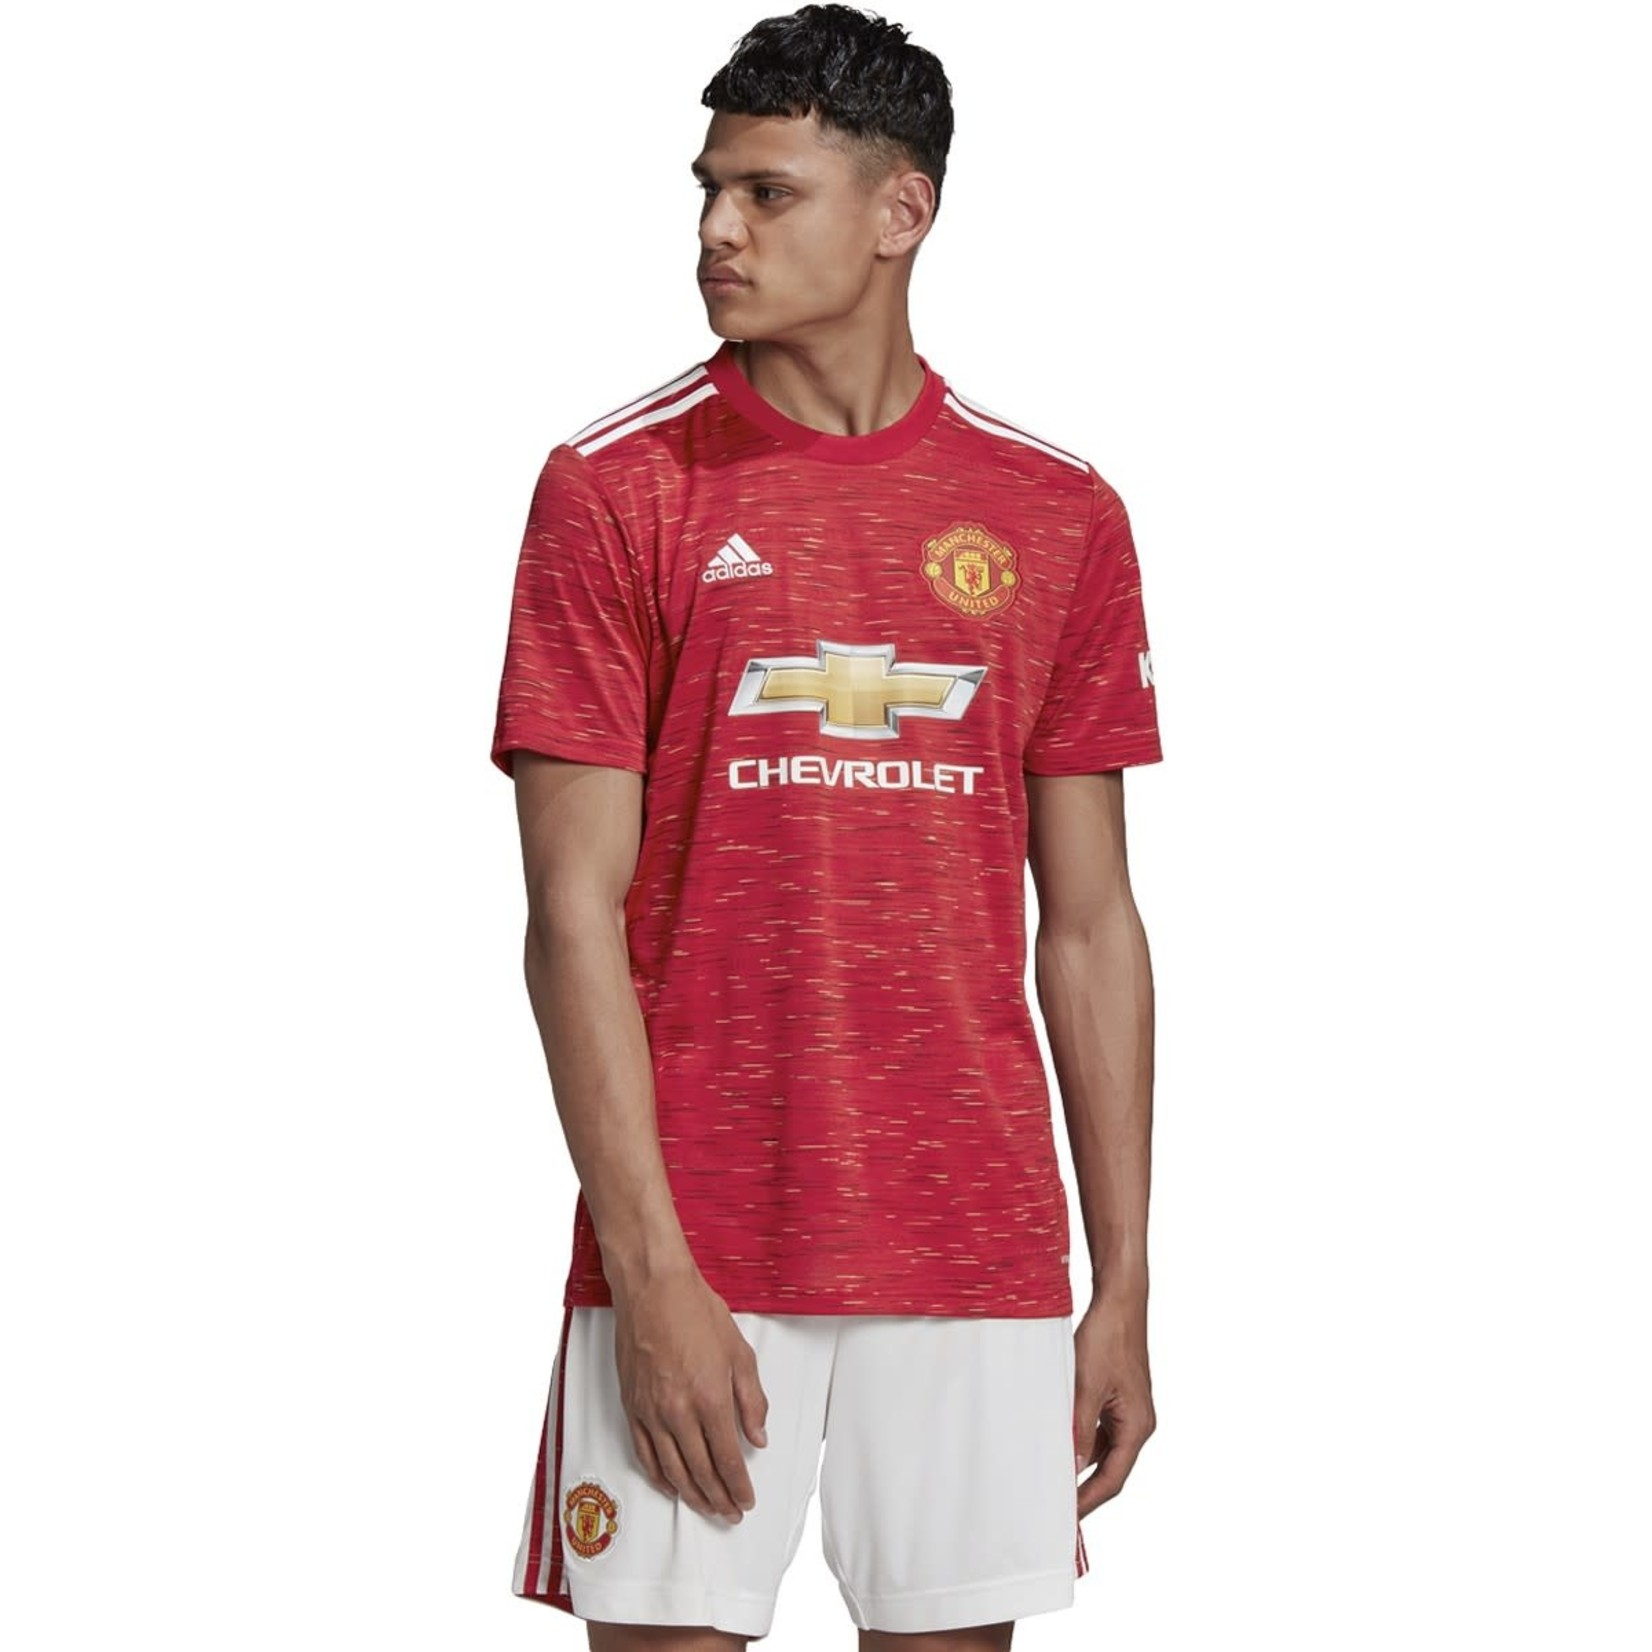 ADIDAS MANCHESTER UNITED 20/21 HOME JERSEY (RED)